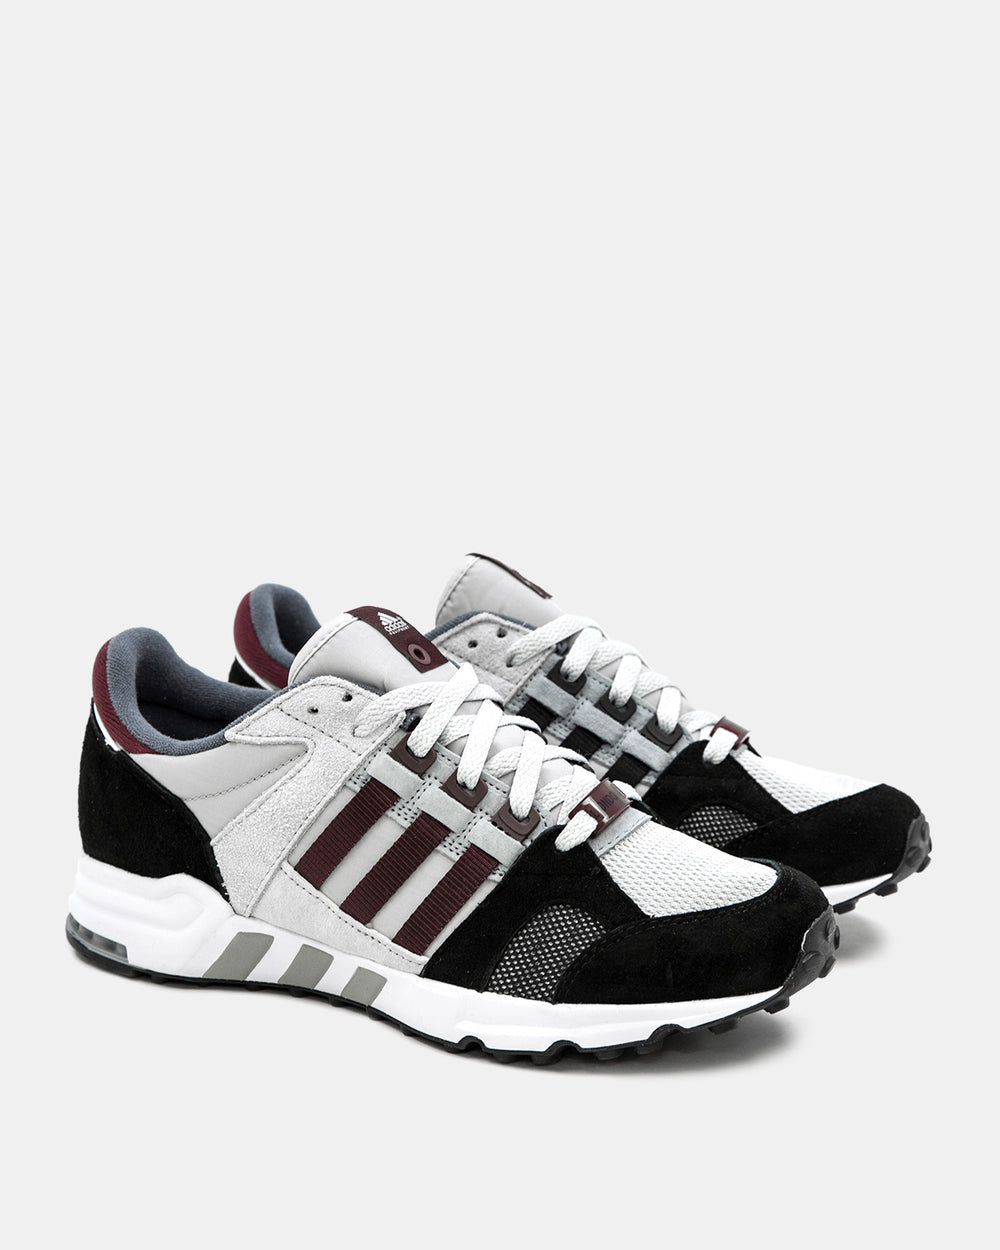 Footpatrol x adidas - EQT Running Support '93